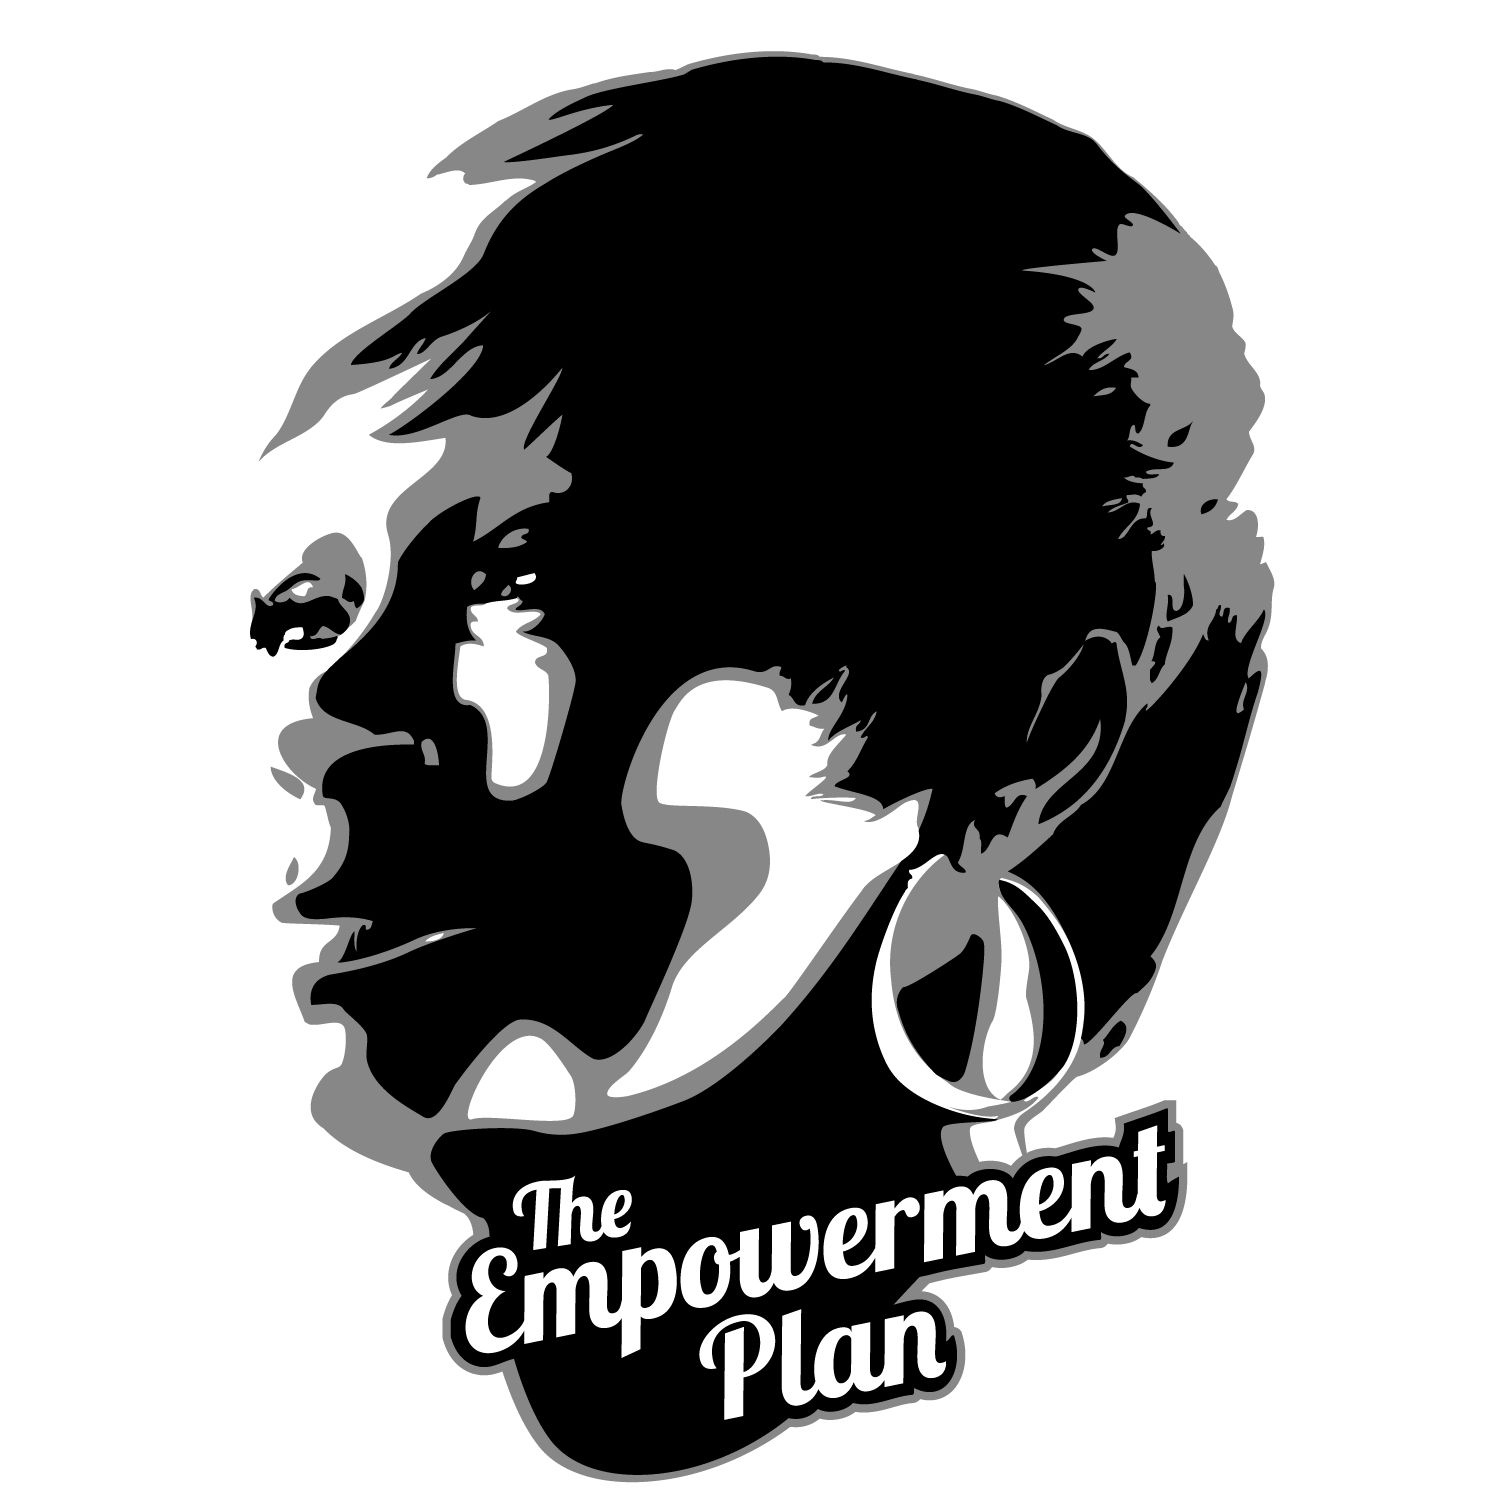 The Empowerment Plan Empowerment How To Plan Helping The Homeless